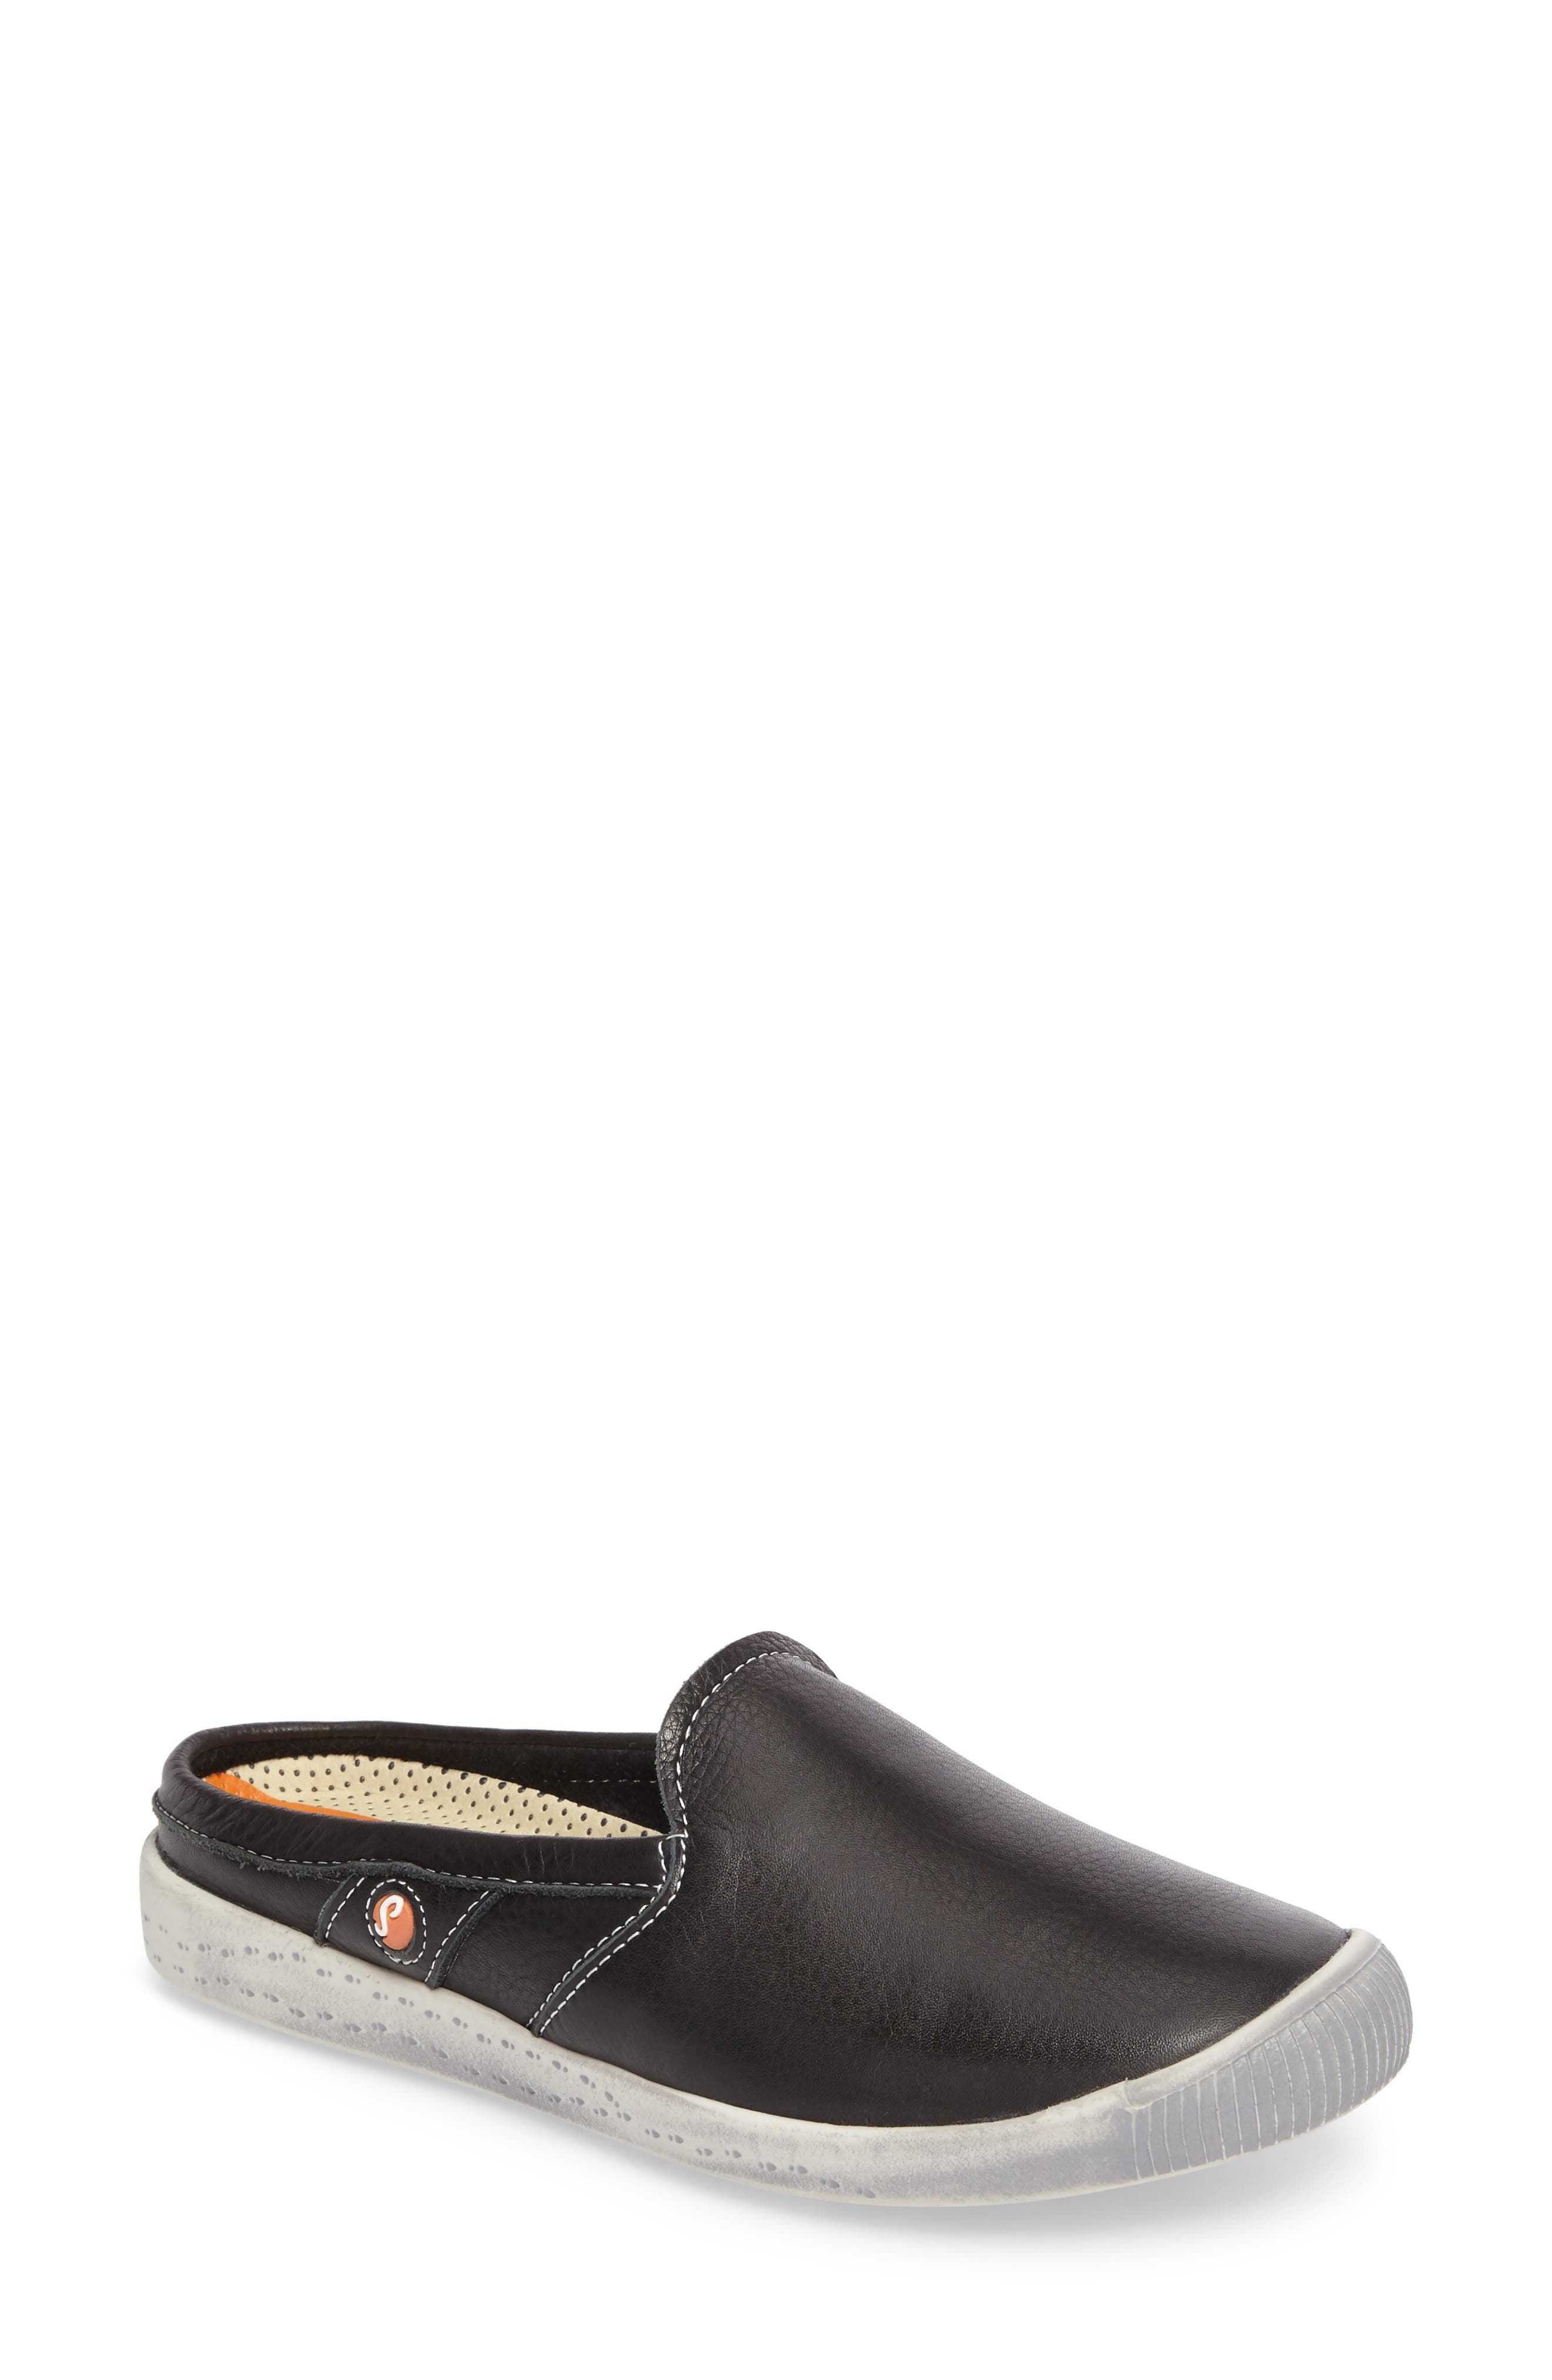 Main Image - Softinos by Fly London Imo Sneaker Mule (Women)